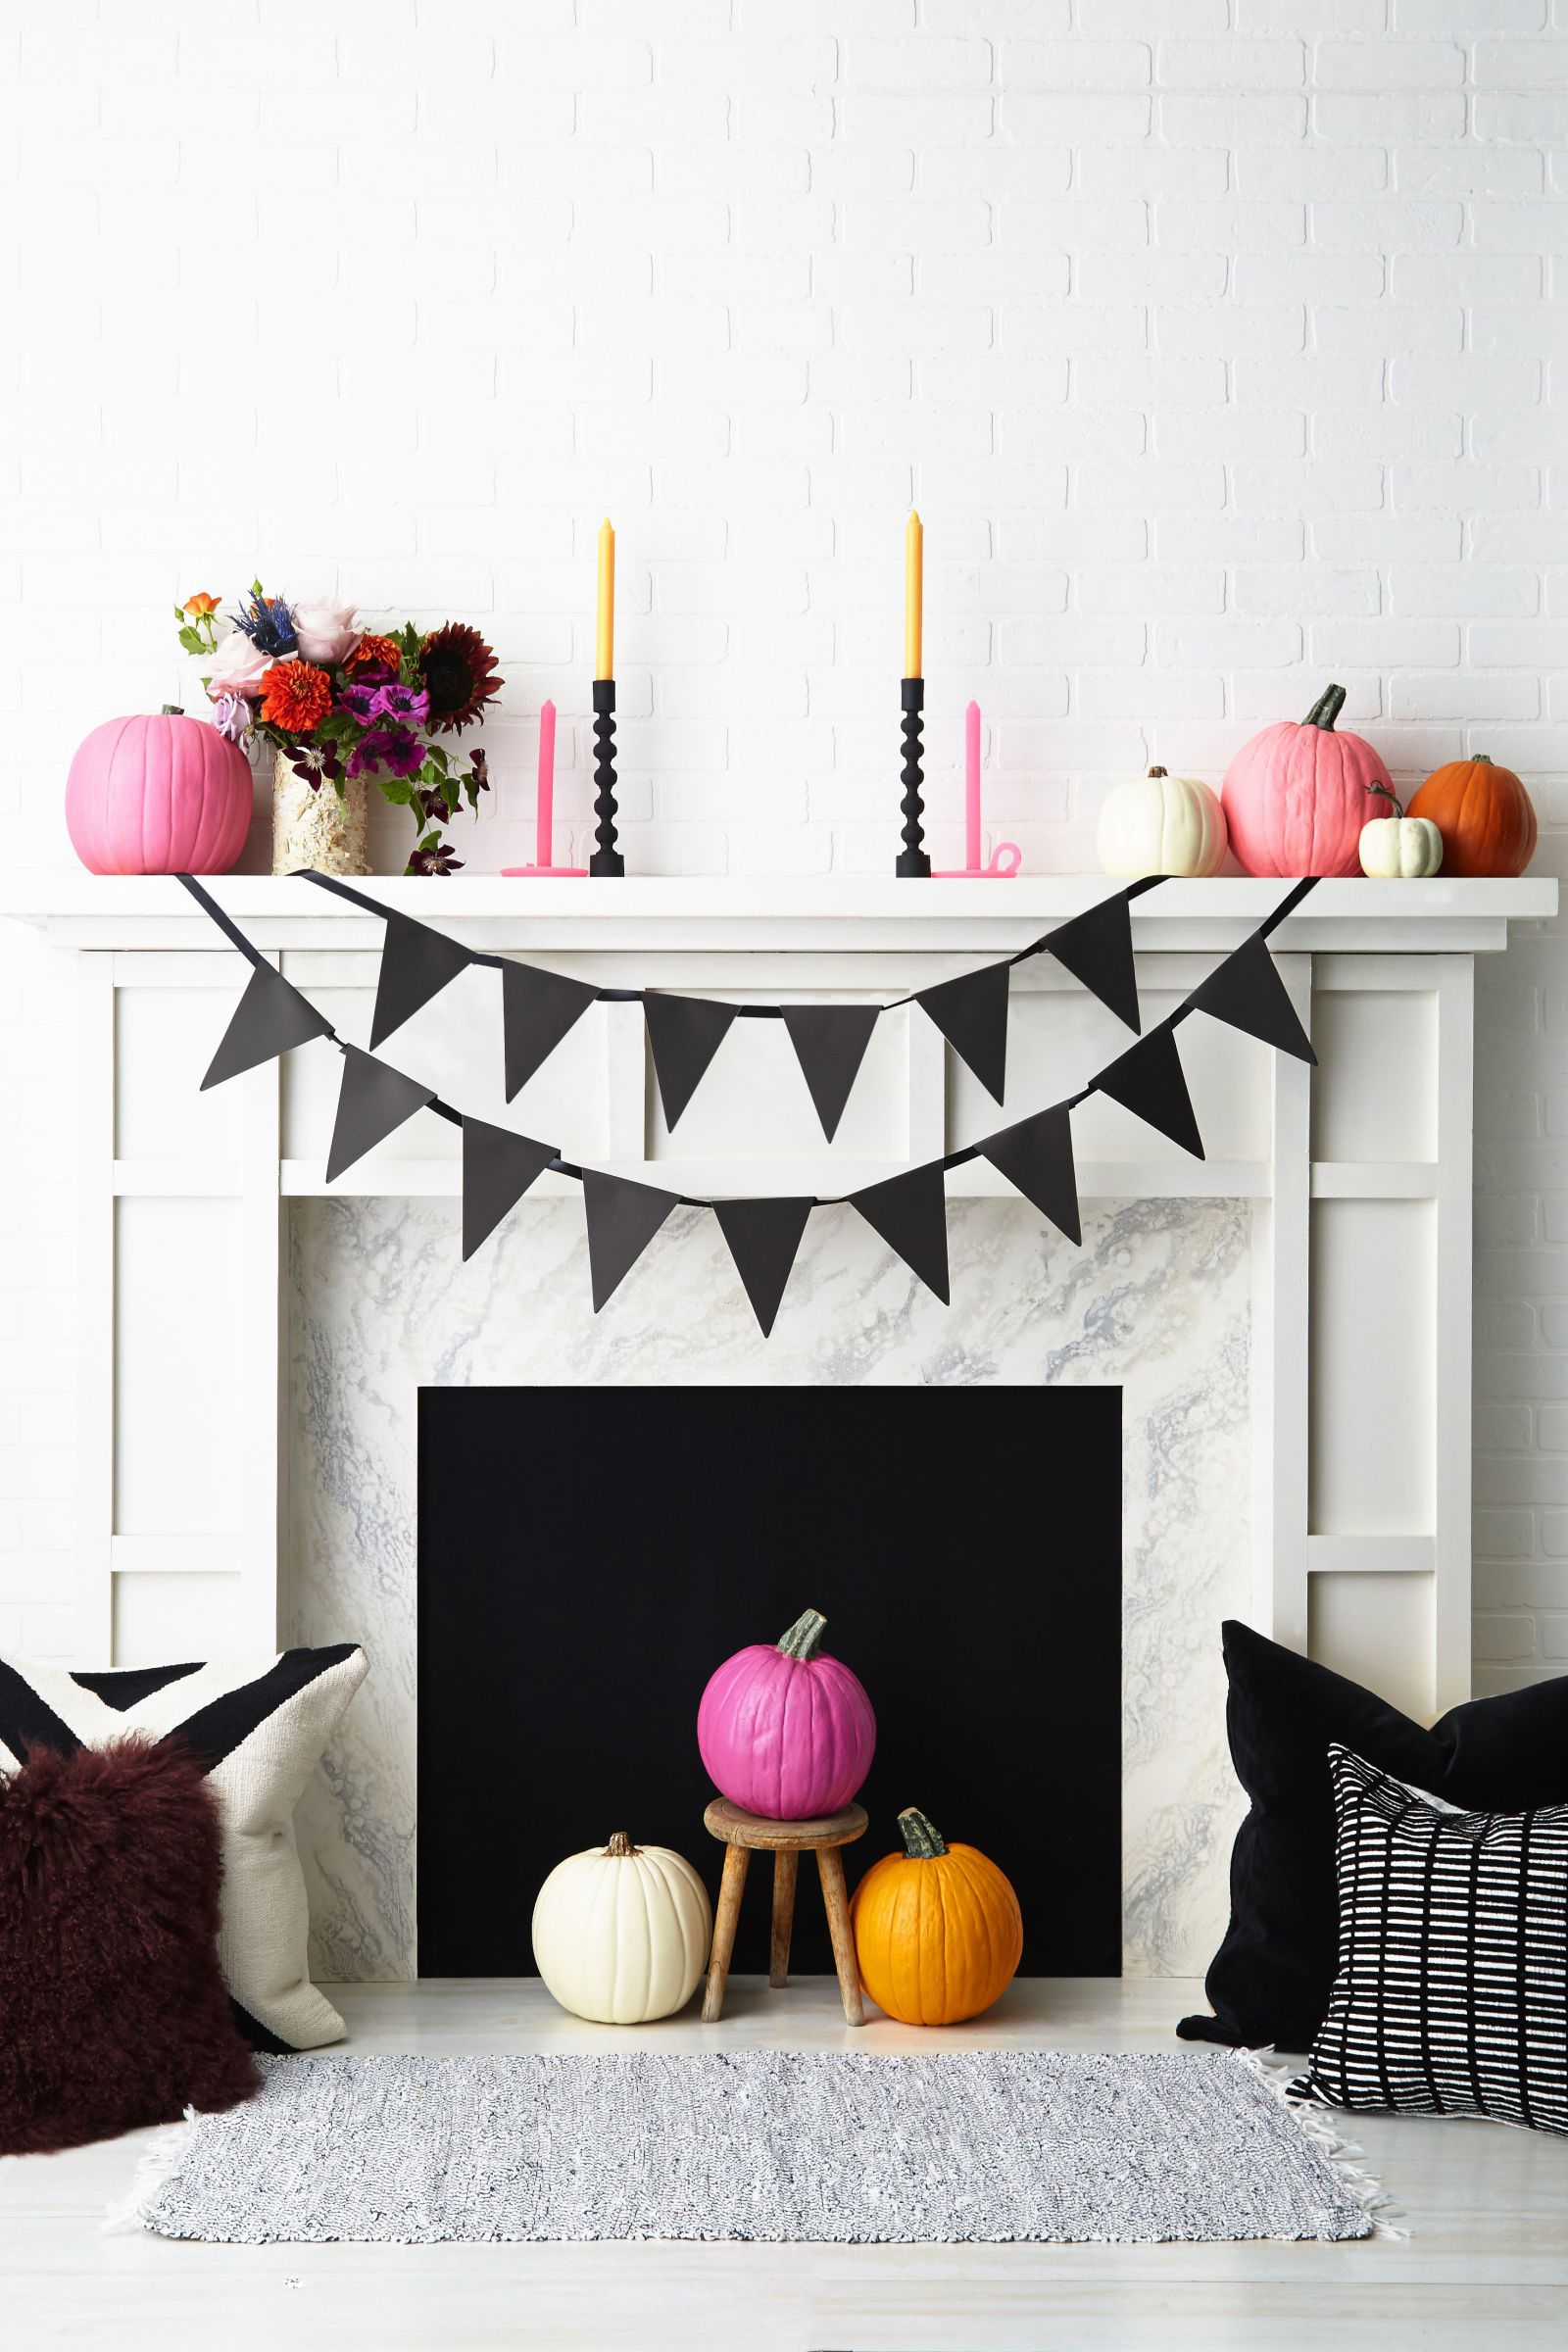 20+ DIY Halloween Decorations - Cool Homemade Halloween Decor